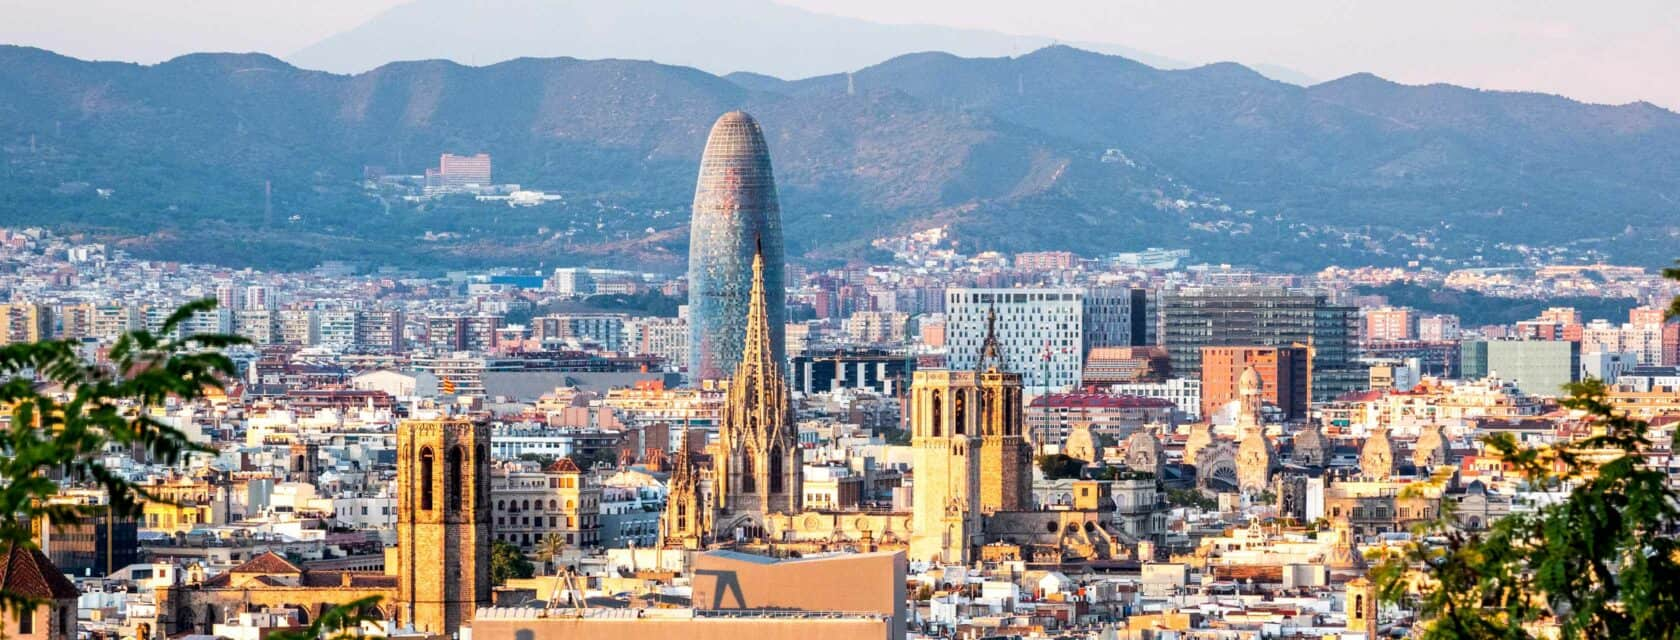 An aerial view of Barcelona where you can see major architectural landmarks.